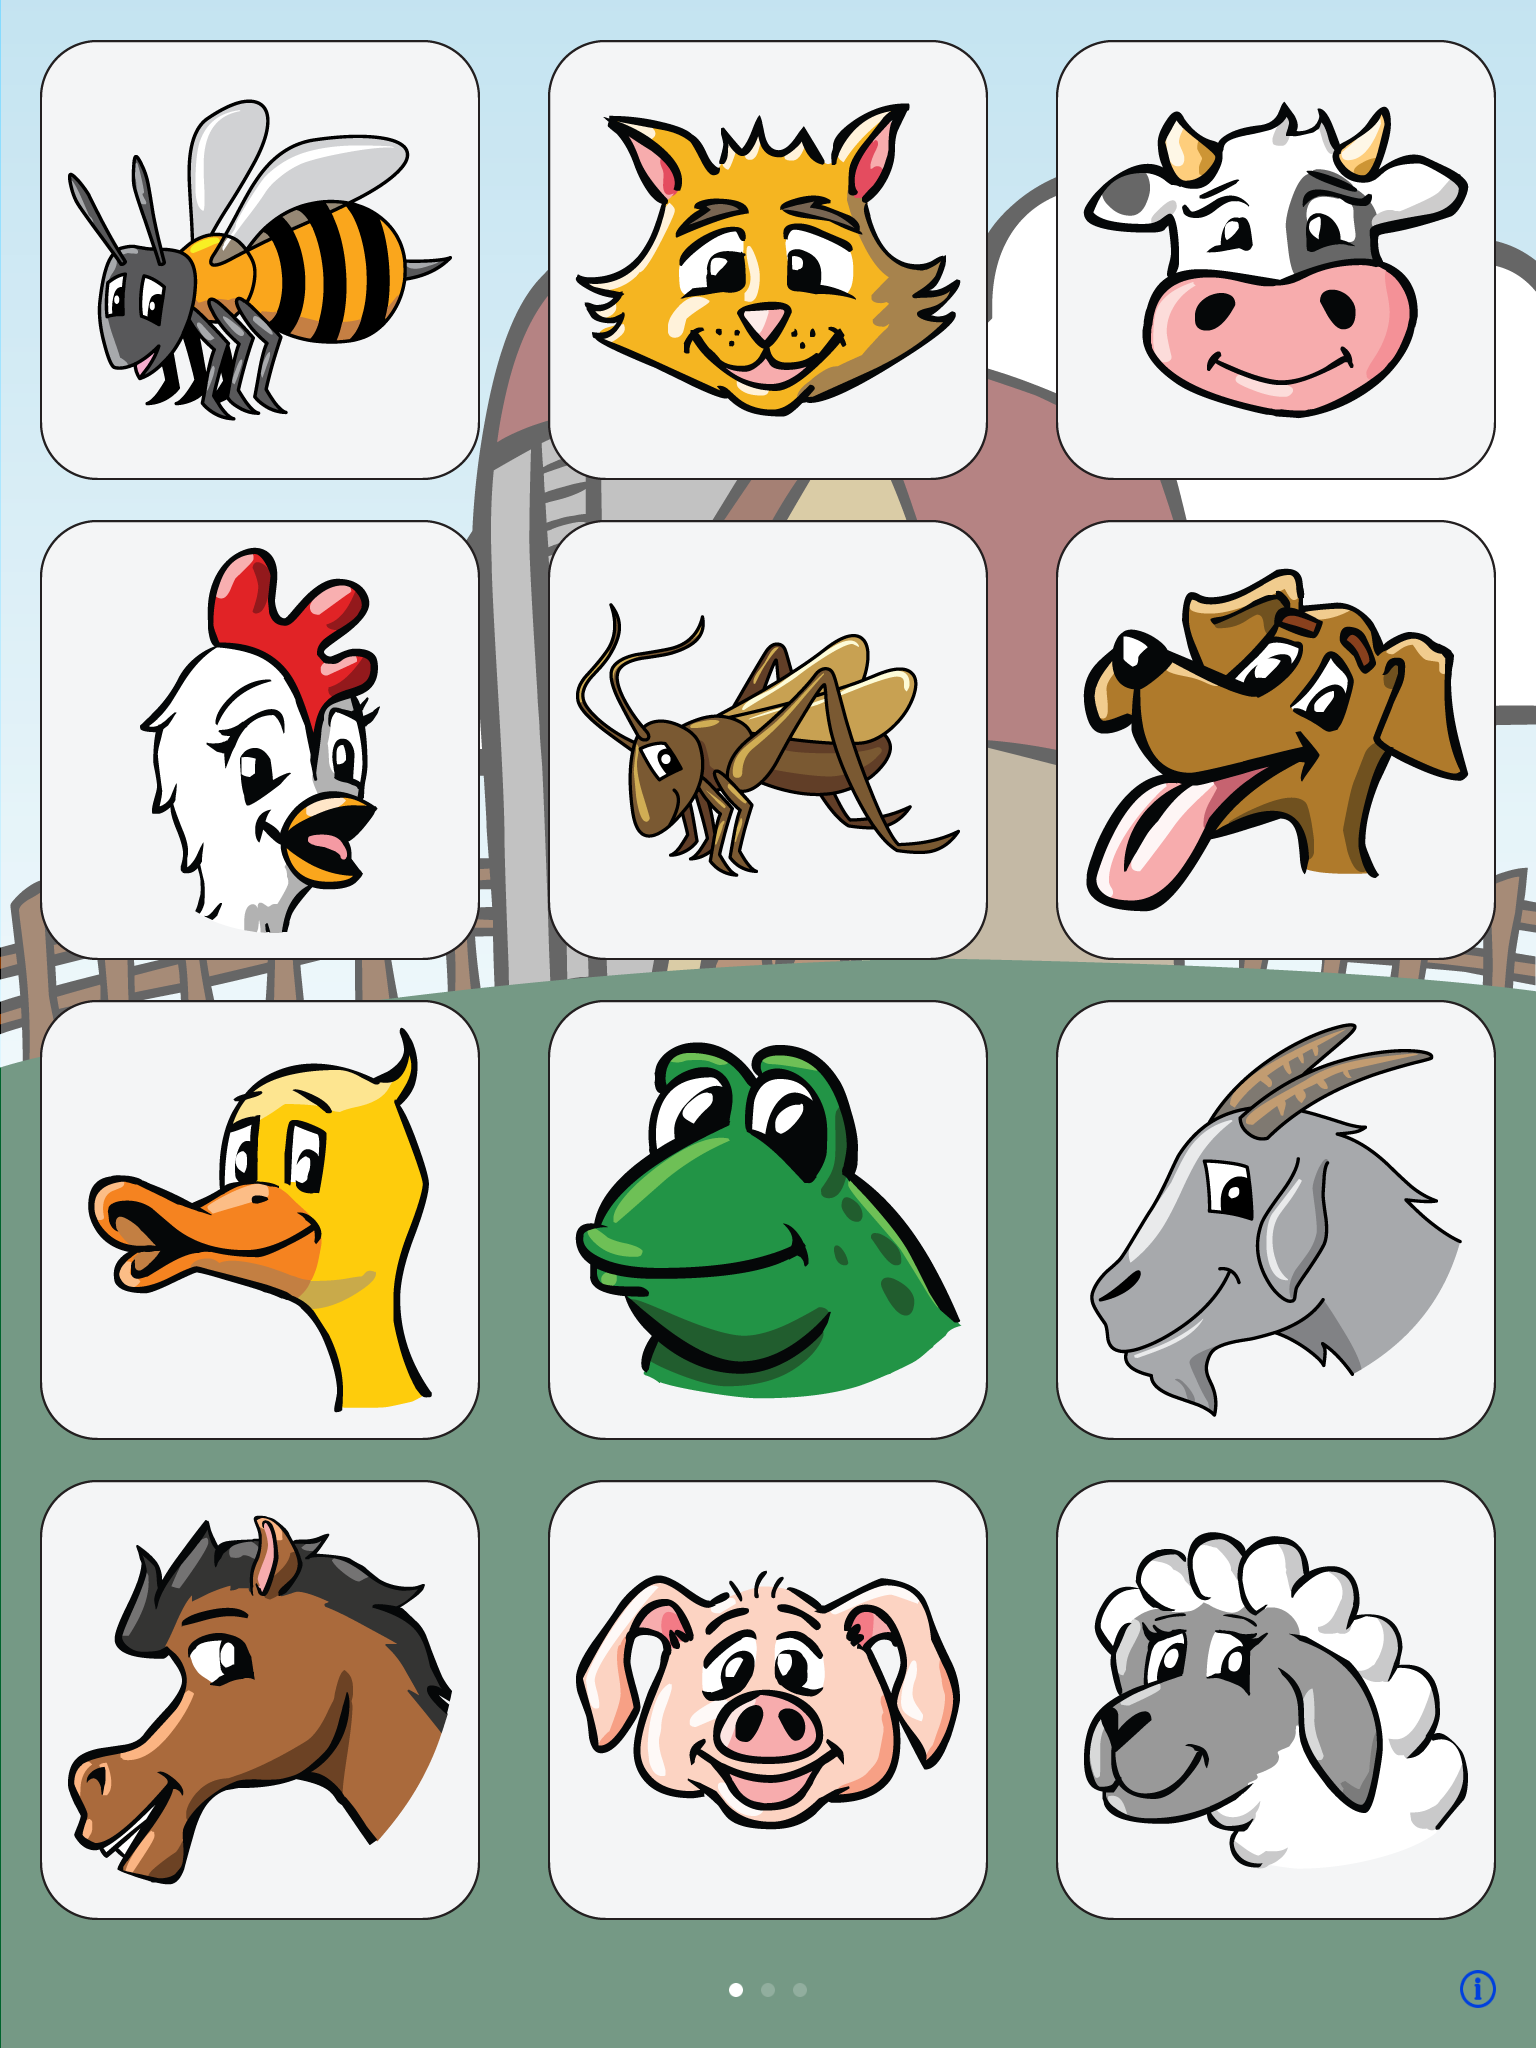 I Hear Ewe app screenshot with a cartoon animal in each of 12 boxes.